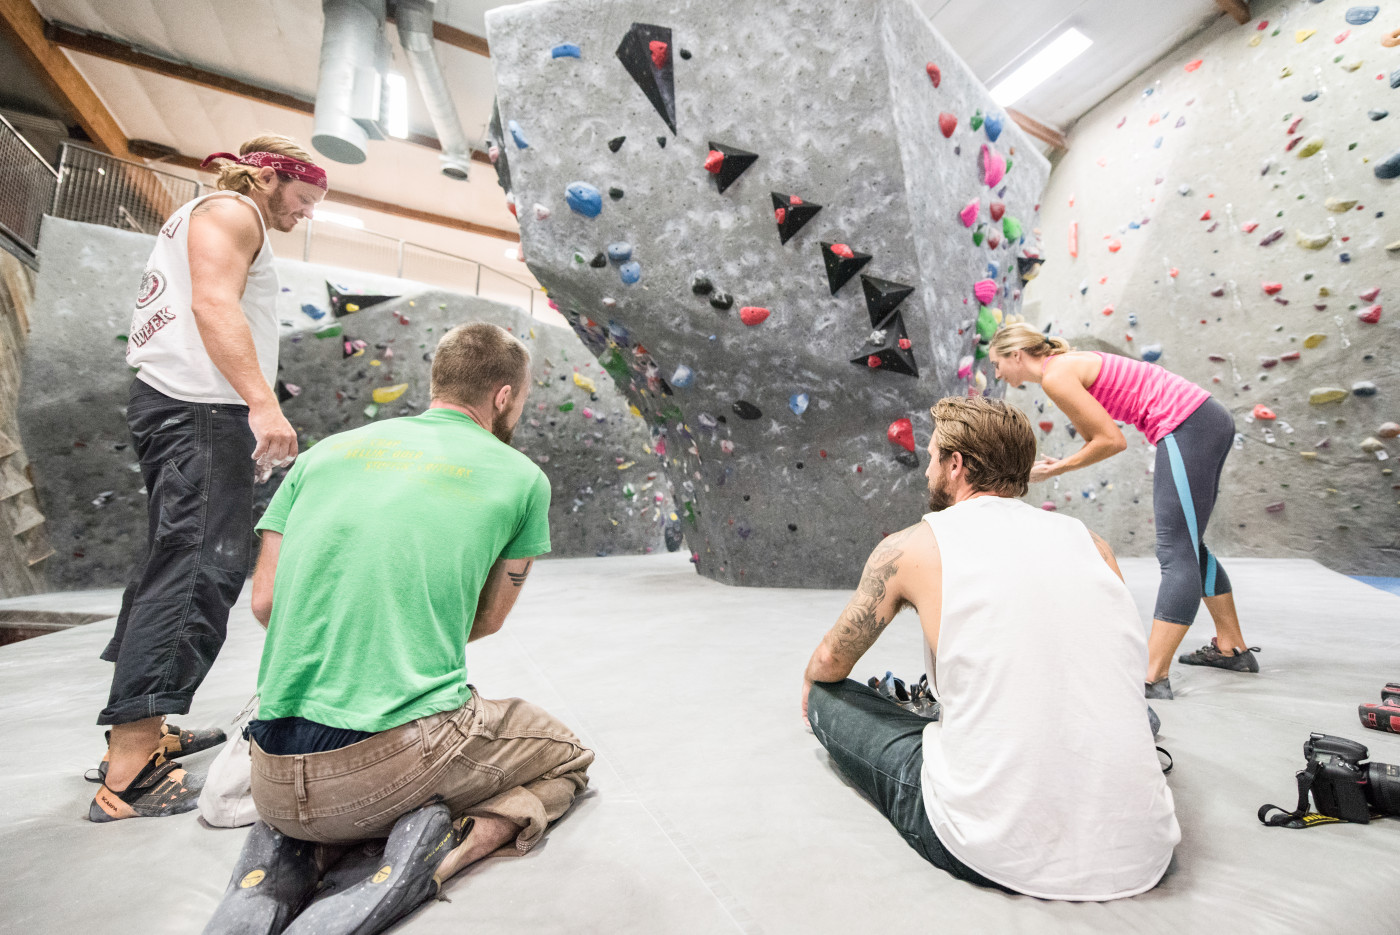 Climbing is Community Centered